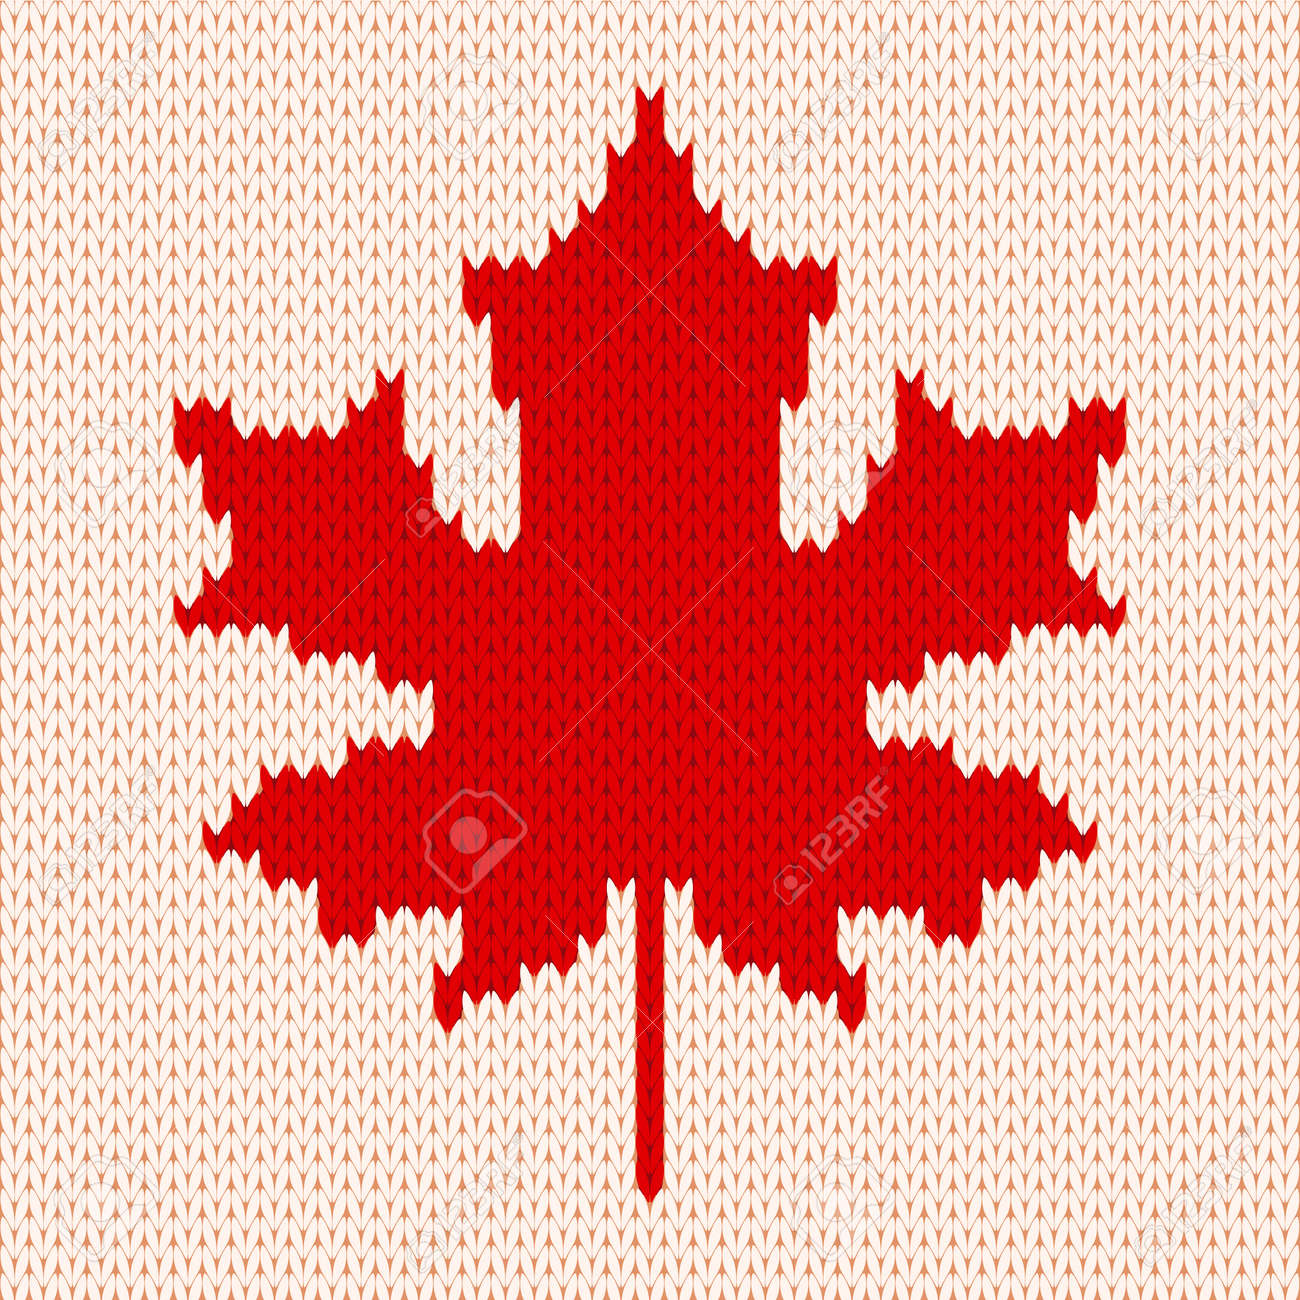 Seamless Knitting Pattern With Red Maple Leaf On White Background